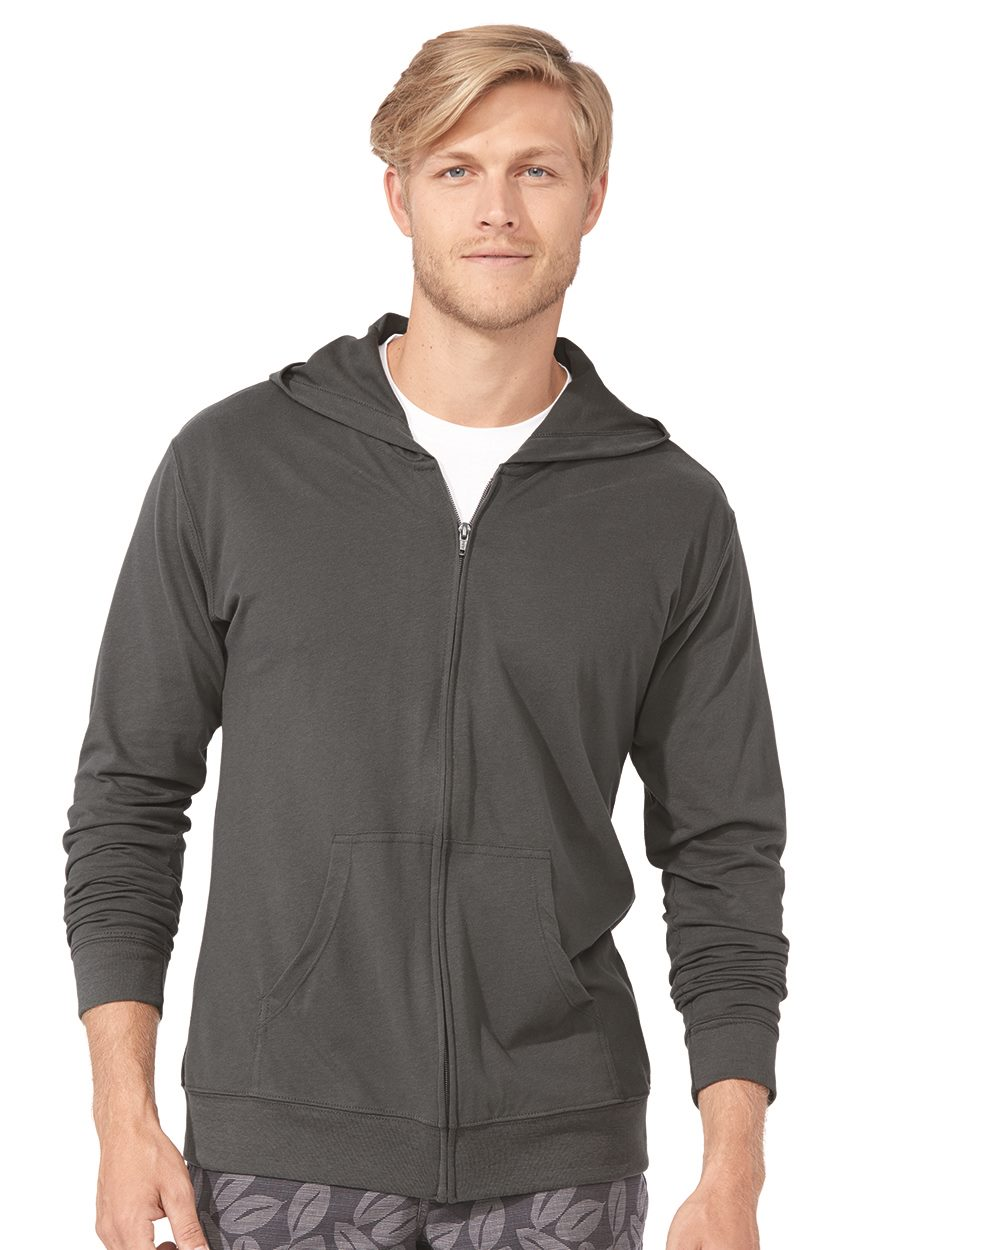 Next Level Apparel 6491 - Unisex Sueded Full-Zip Hoodie